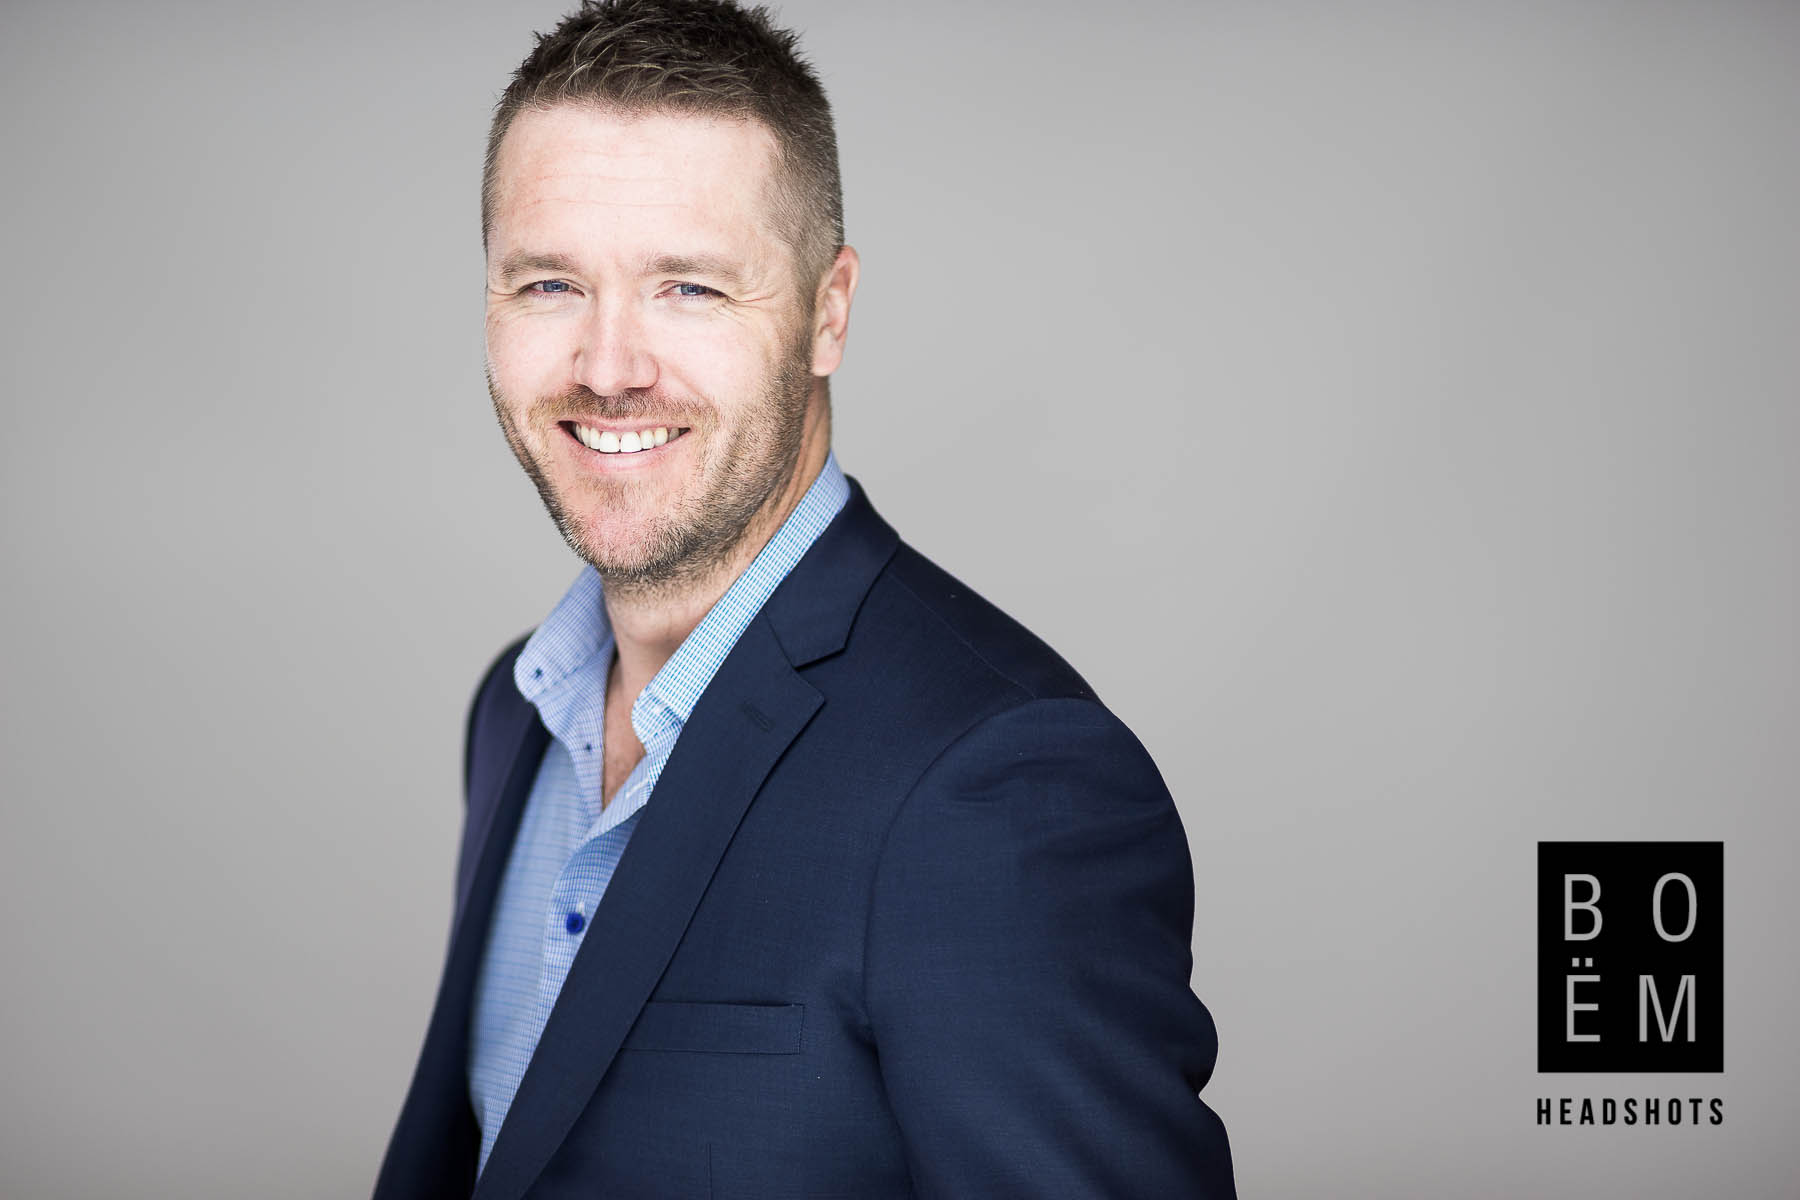 A corporate headshot session for Jon, a local Adelaide CEO who was looking to growths online network.